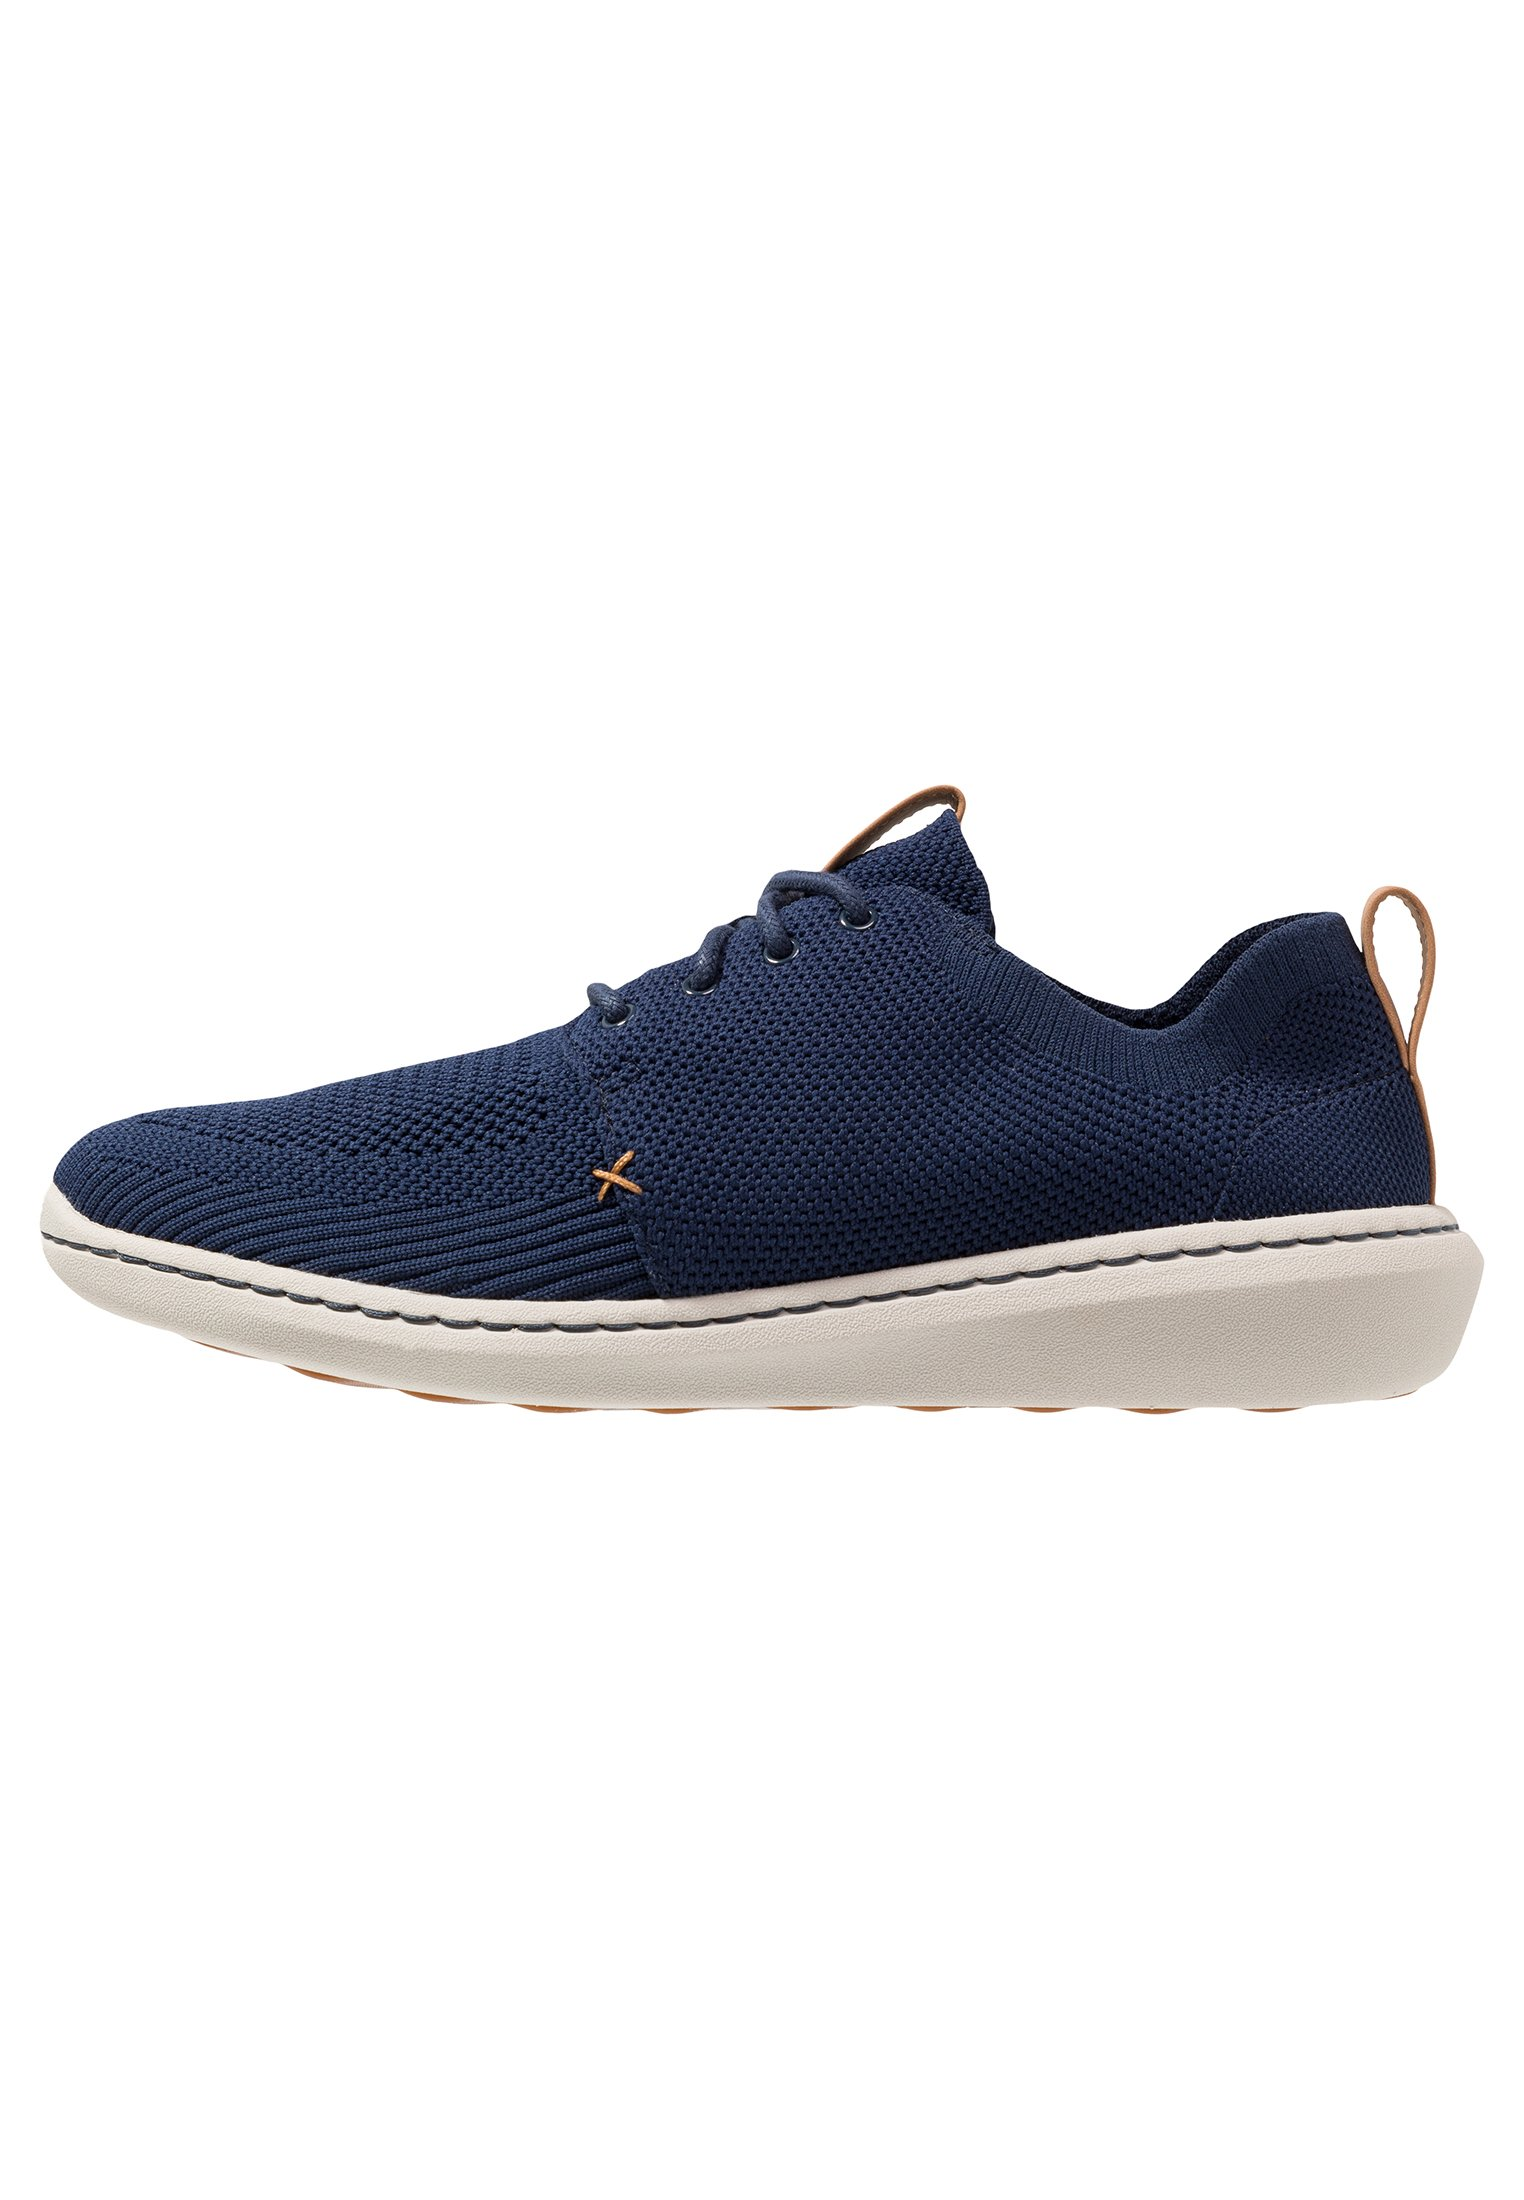 Clarks | Buy Clarks online on Zalando